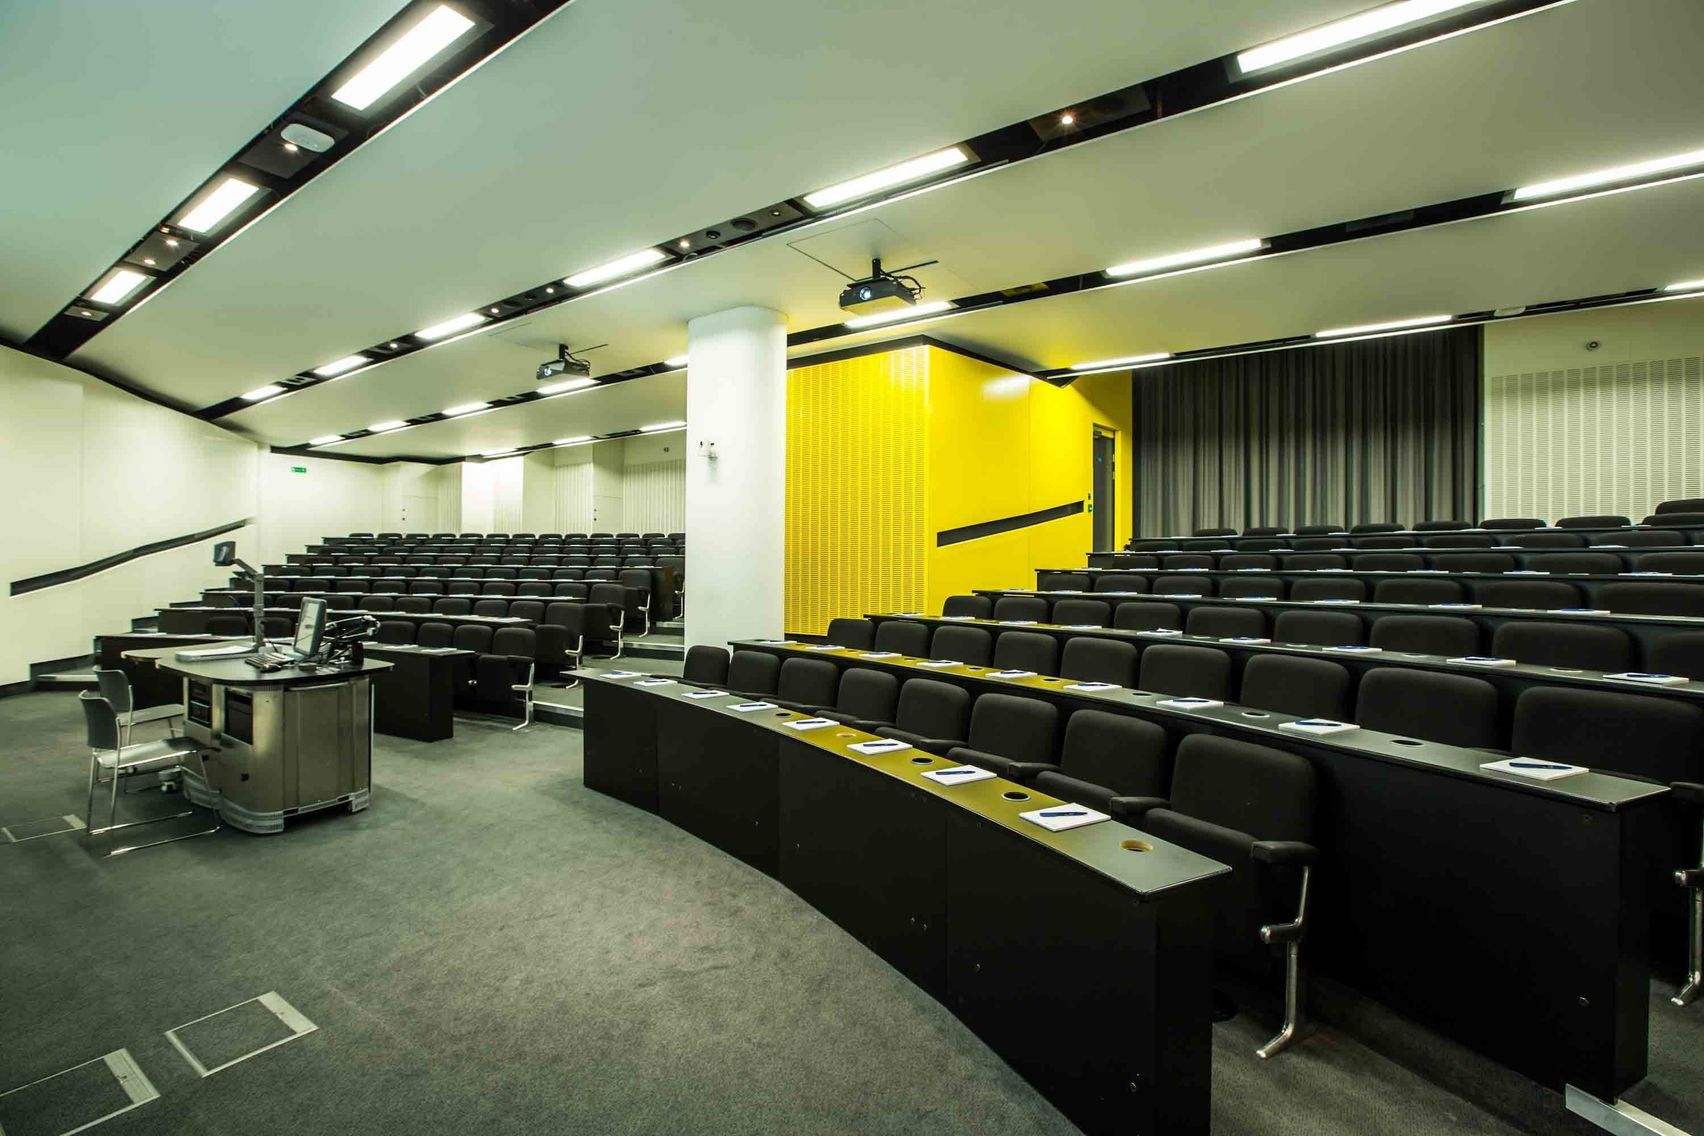 Lecture theatres and classrooms, Imperial College London